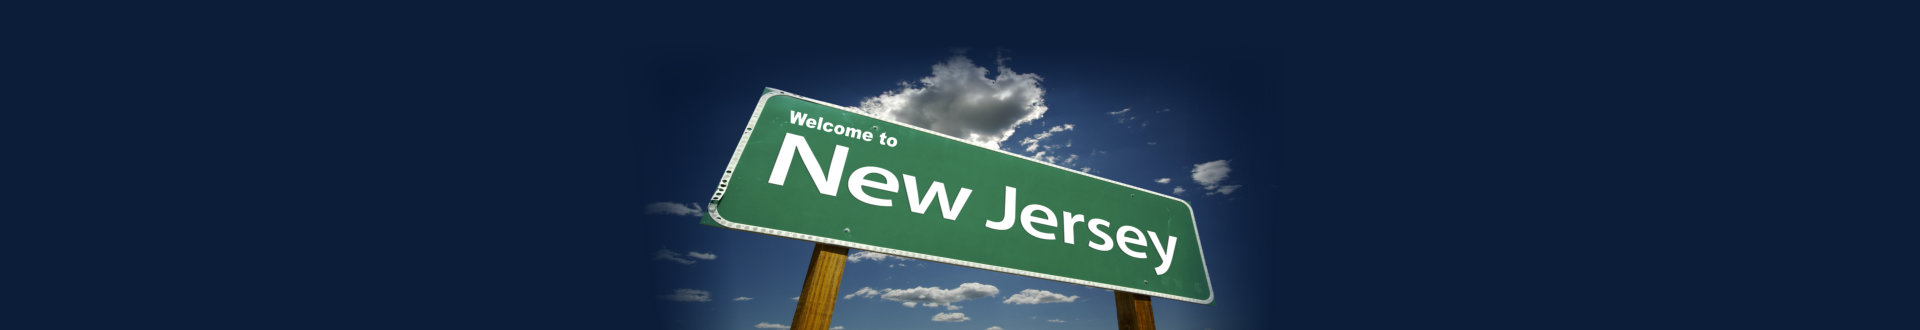 new jersey road name